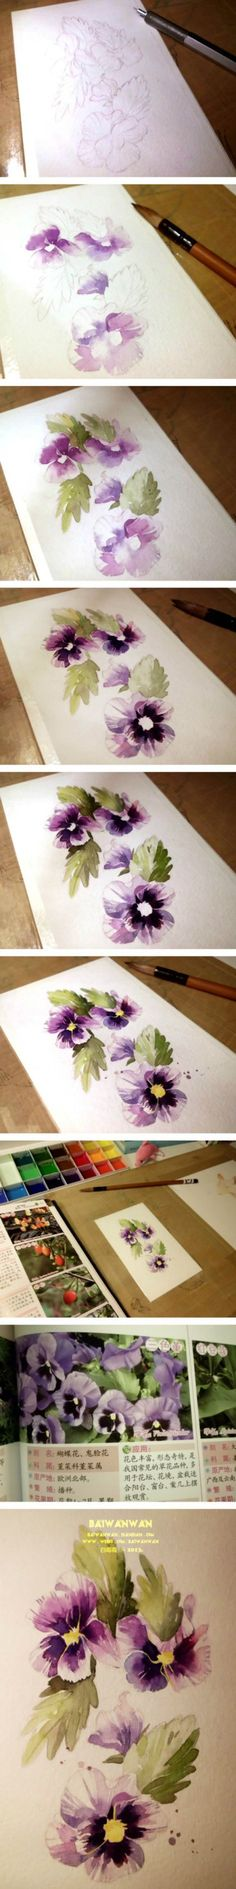 20 Delicate Colorful Watercolor Flower Painting Tutorials In Images-HOMESTHETICS…